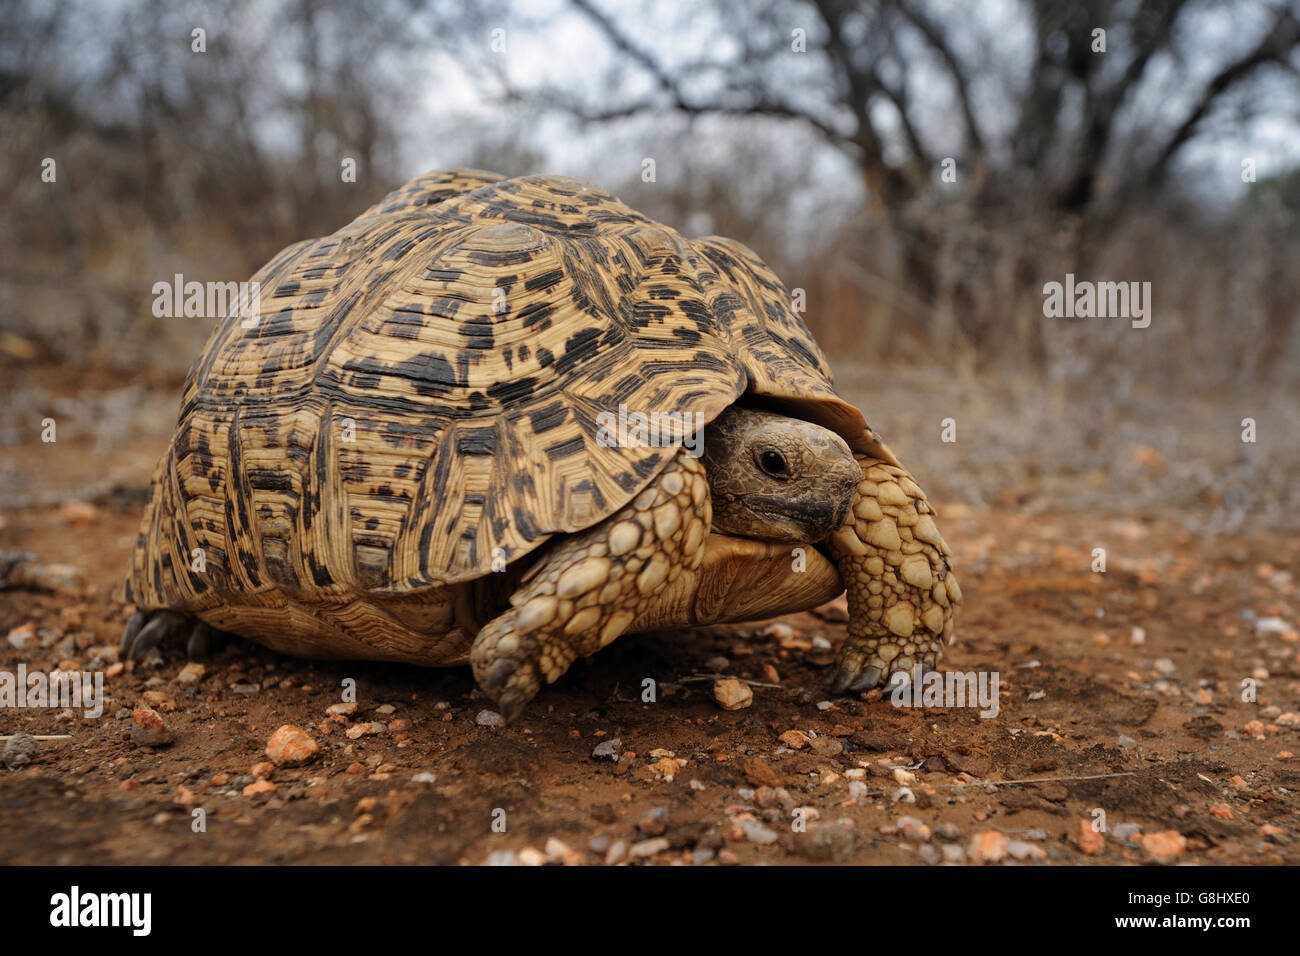 Mountain tortoise, Geochelone pardalis, South Africa. - Stock Image